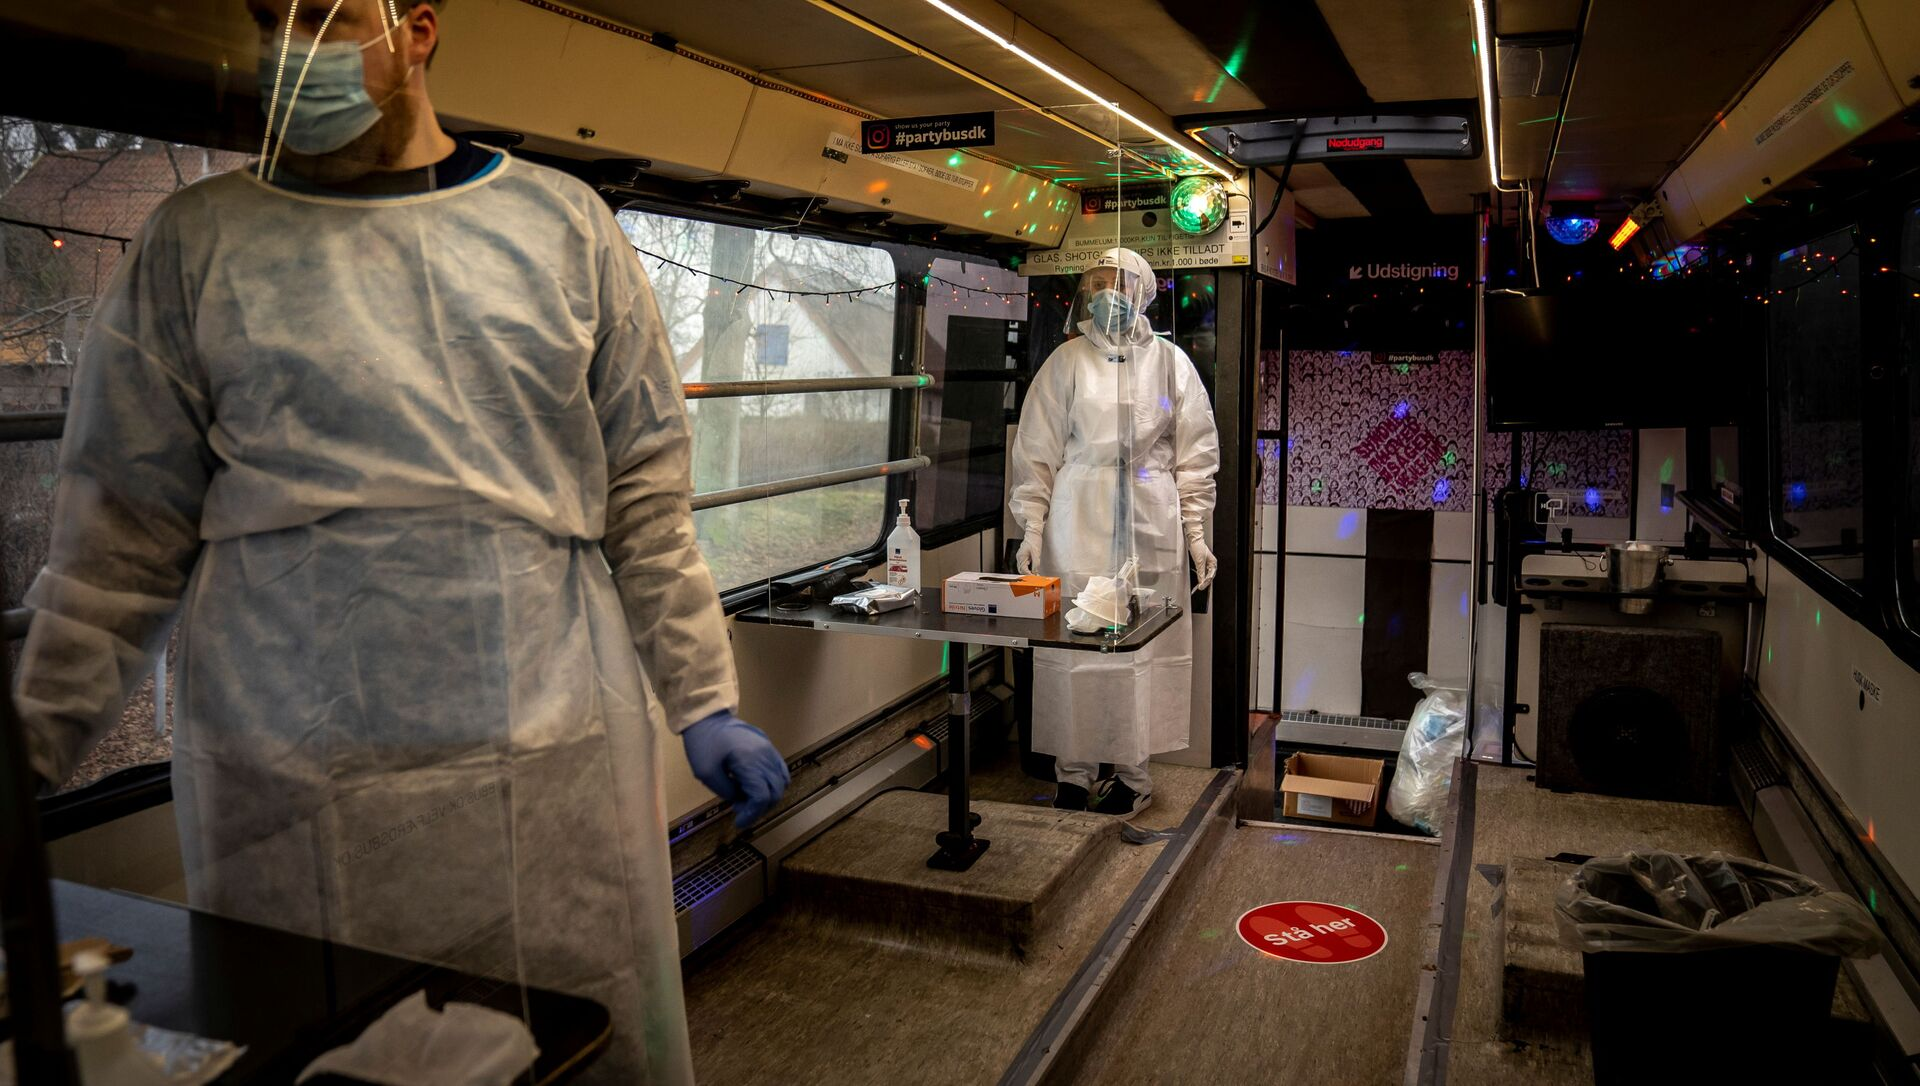 Healthcare workers wait in the Partybus, where people can listen to music while being tested for the coronavirus disease (COVID-19), in Ishoej, Denmark February 23, 2021 - Sputnik Italia, 1920, 01.04.2021